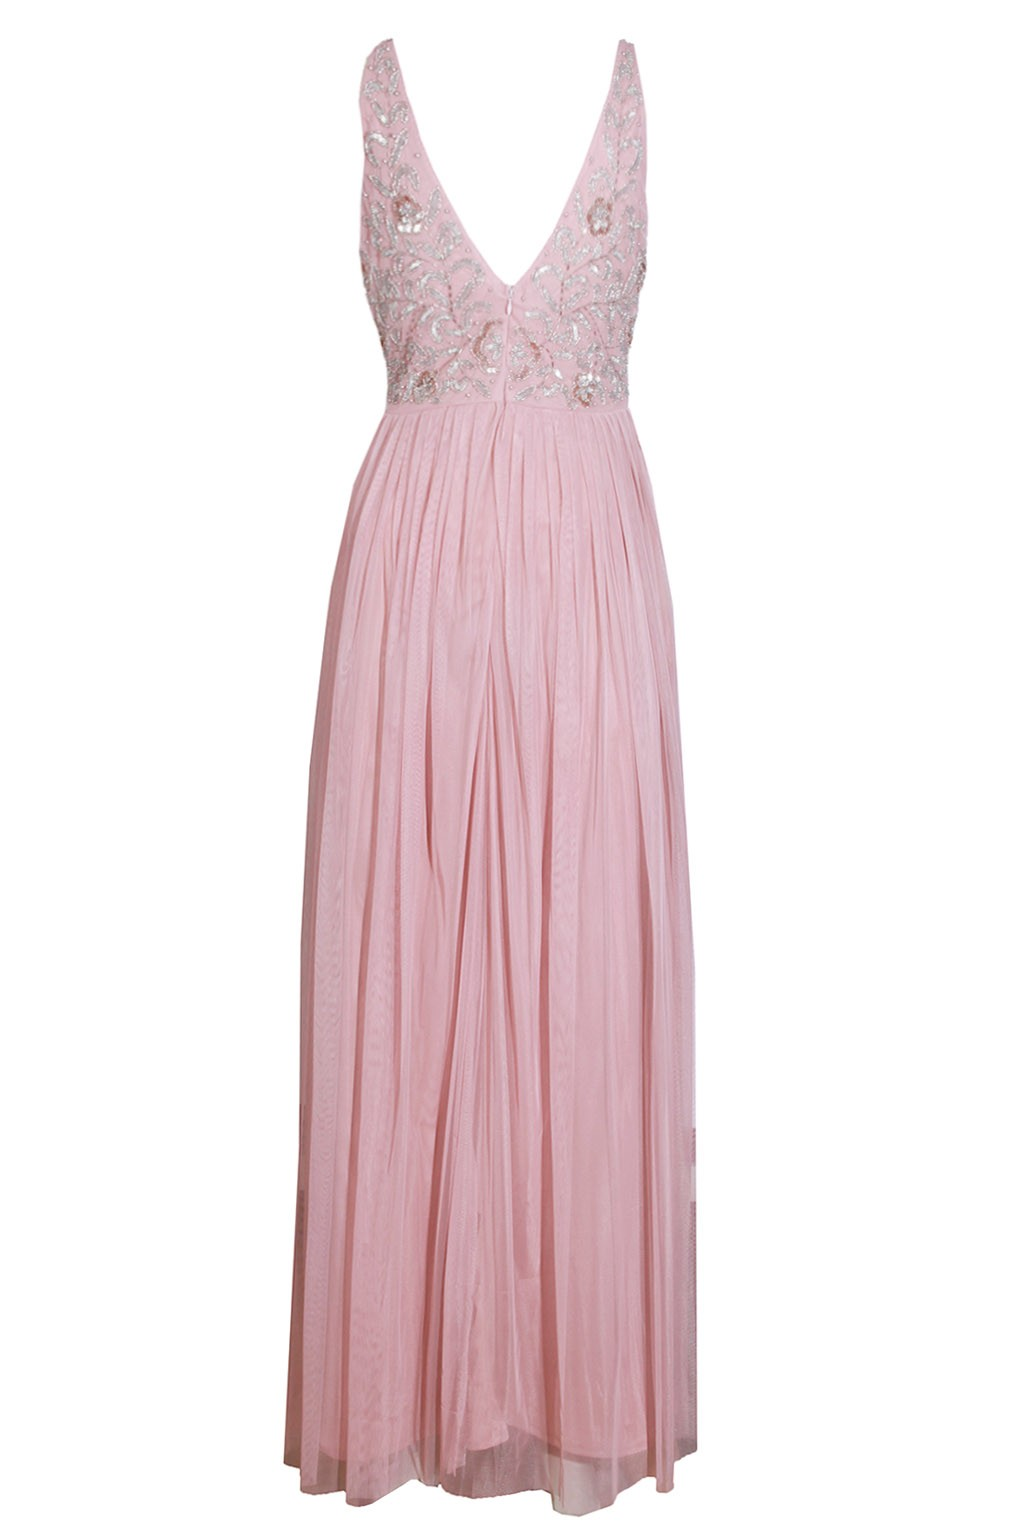 Lace Amp Beads Johanna Pink Embellished Maxi Dress Party